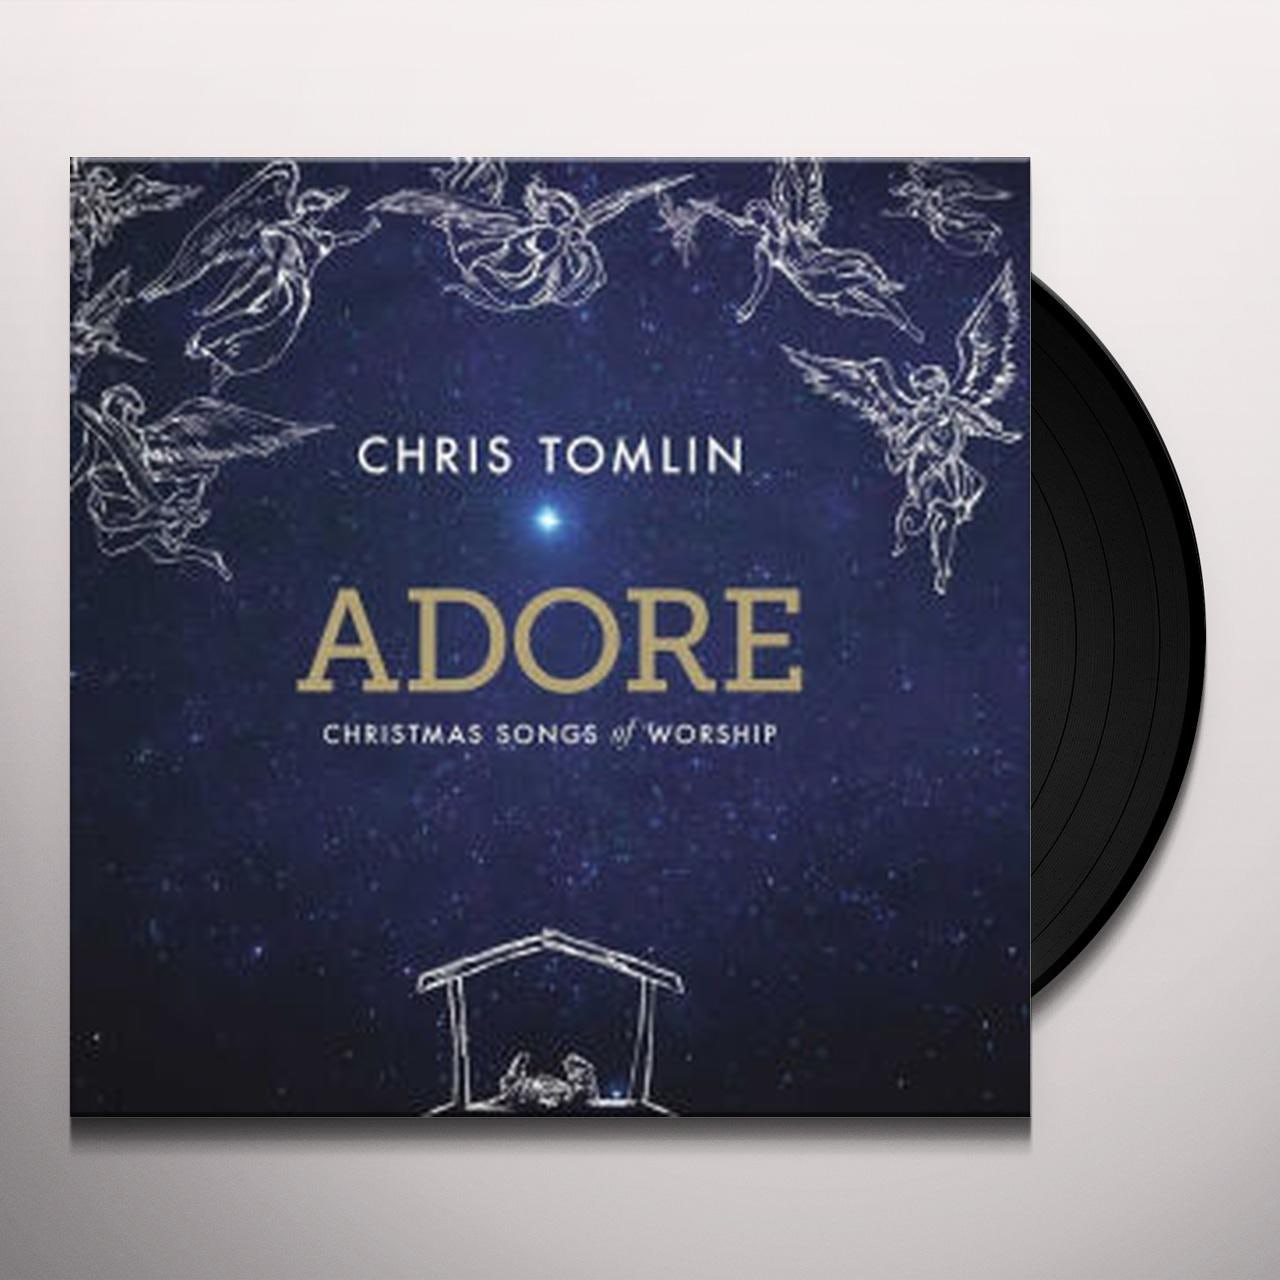 Chris Tomlin Christmas.Chris Tomlin Adore Christmas Songs Of Worship Vinyl Record